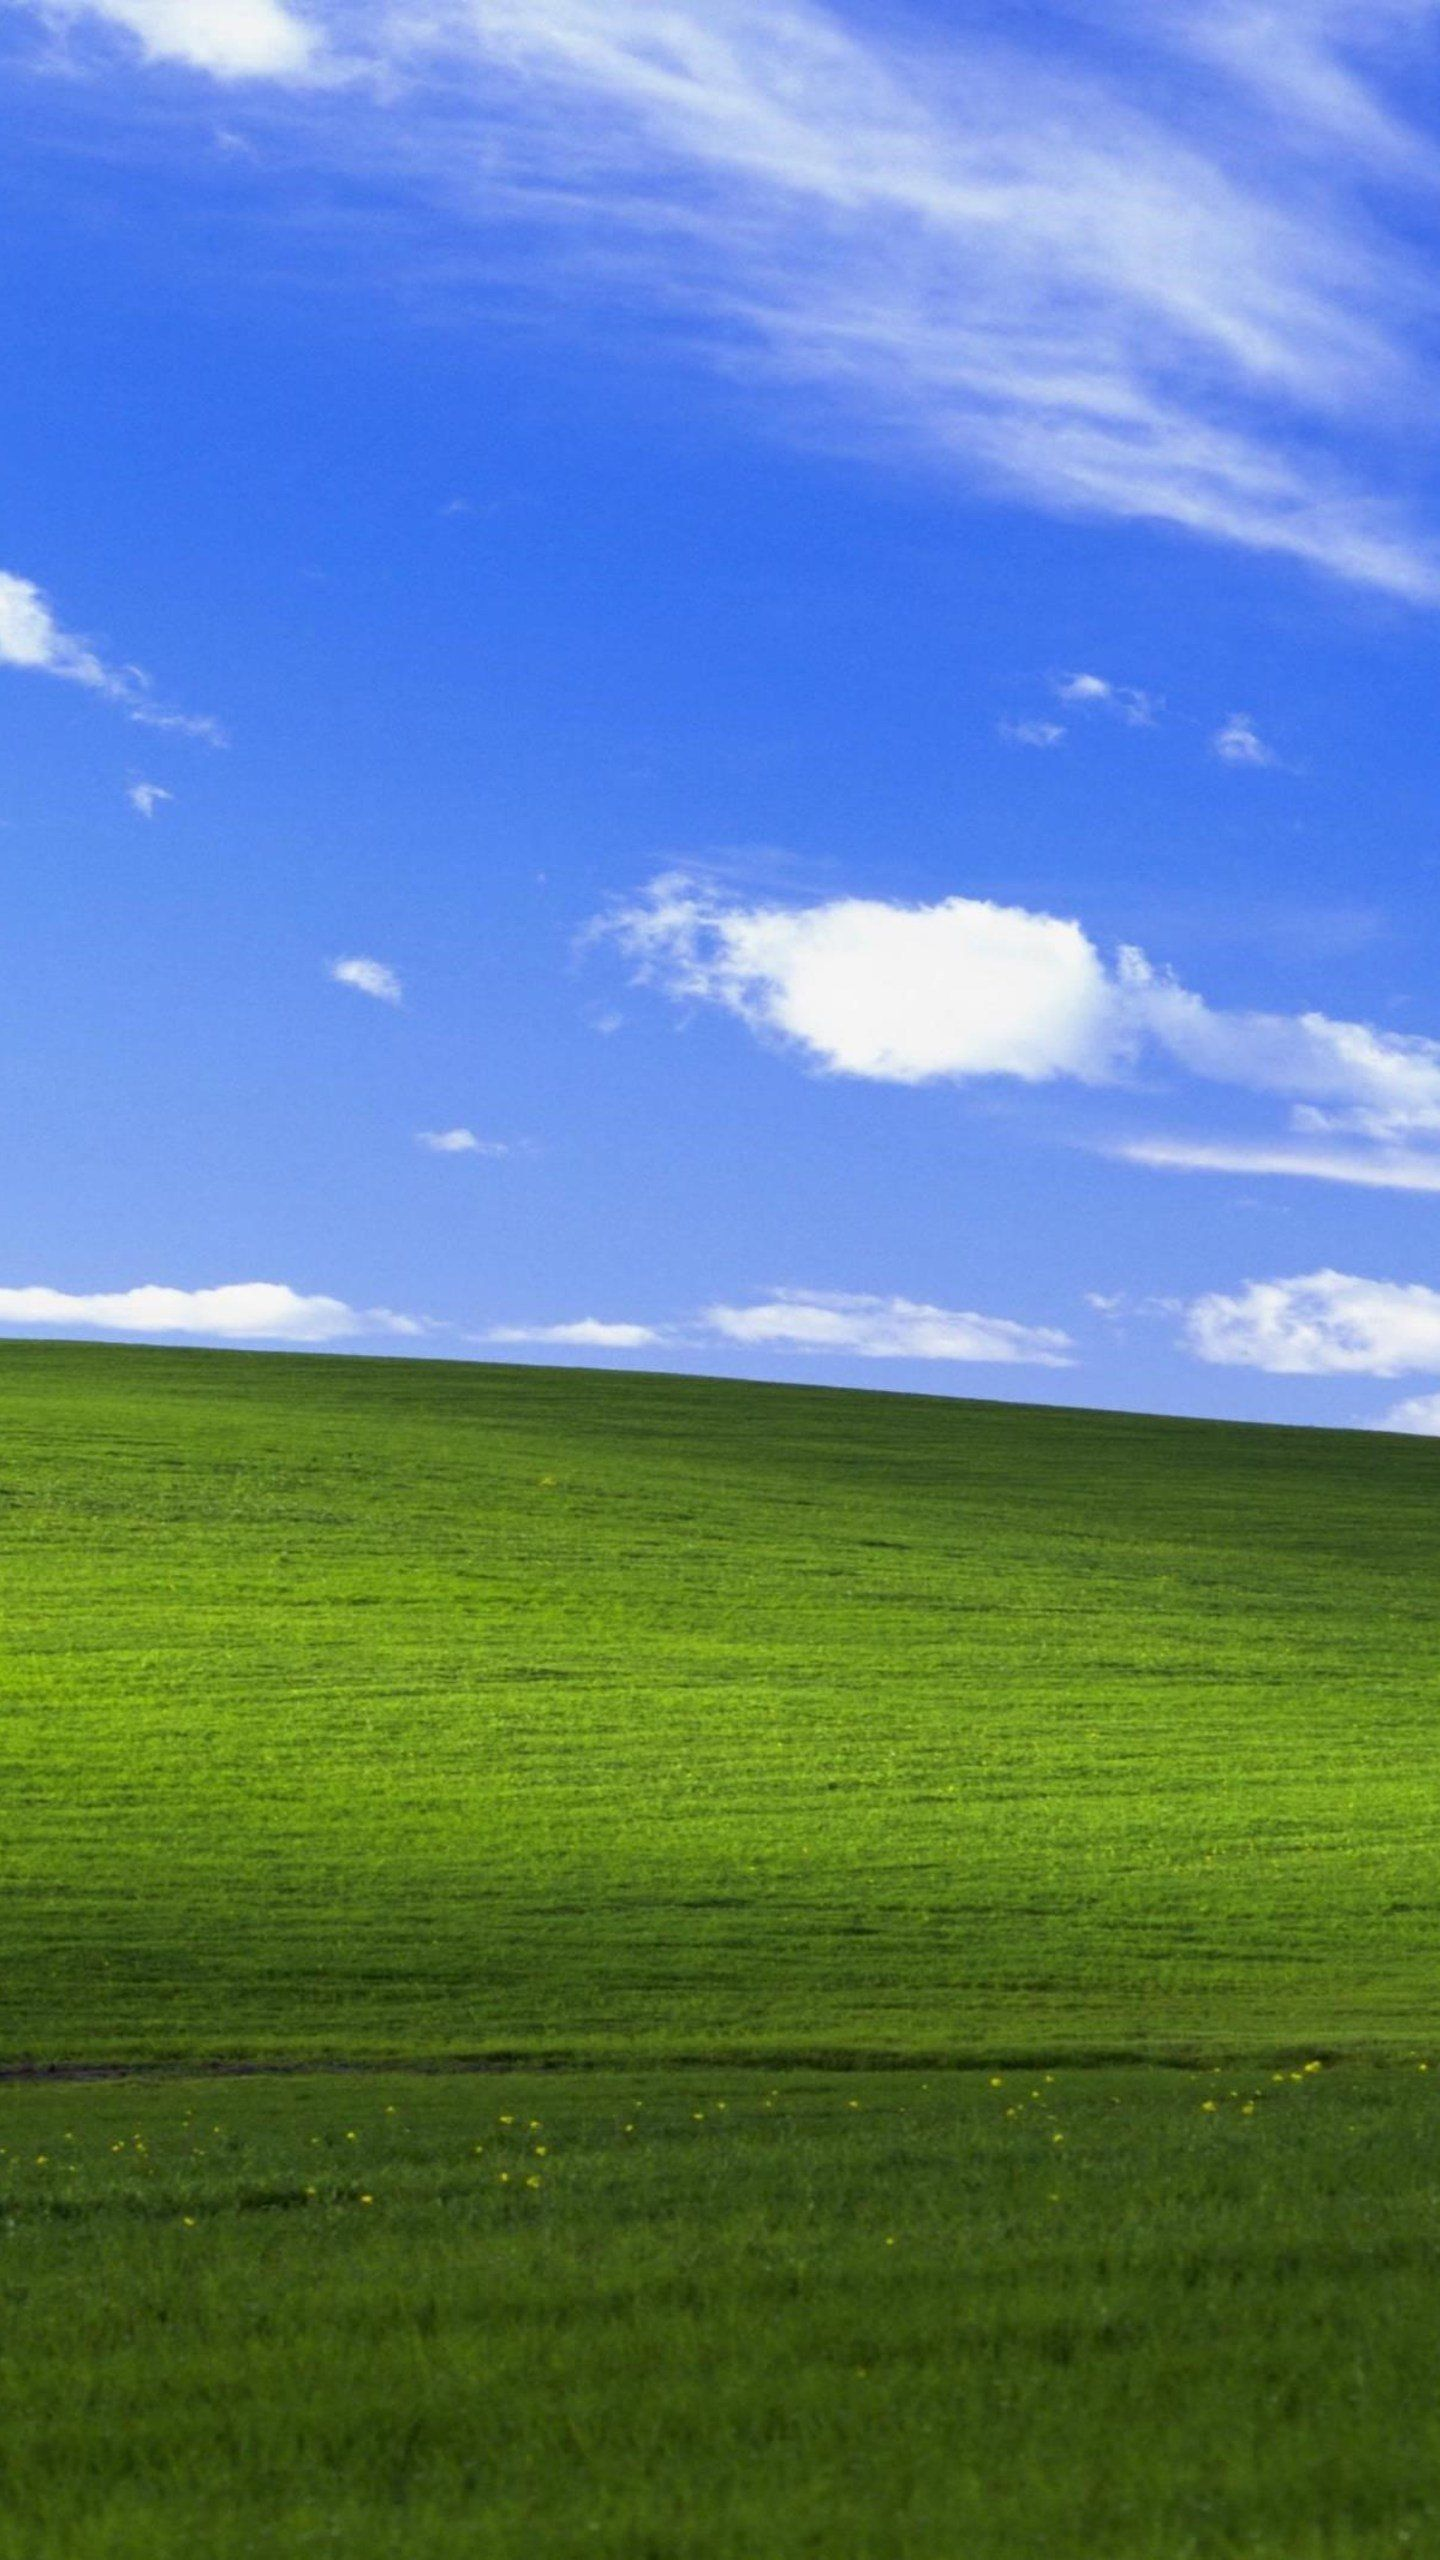 Windows Xp Bliss 4k Hd Computer Wallpapers Photos And Pictures Computer Wallpaper Backgrounds Phone Wallpapers Wallpaper Downloads